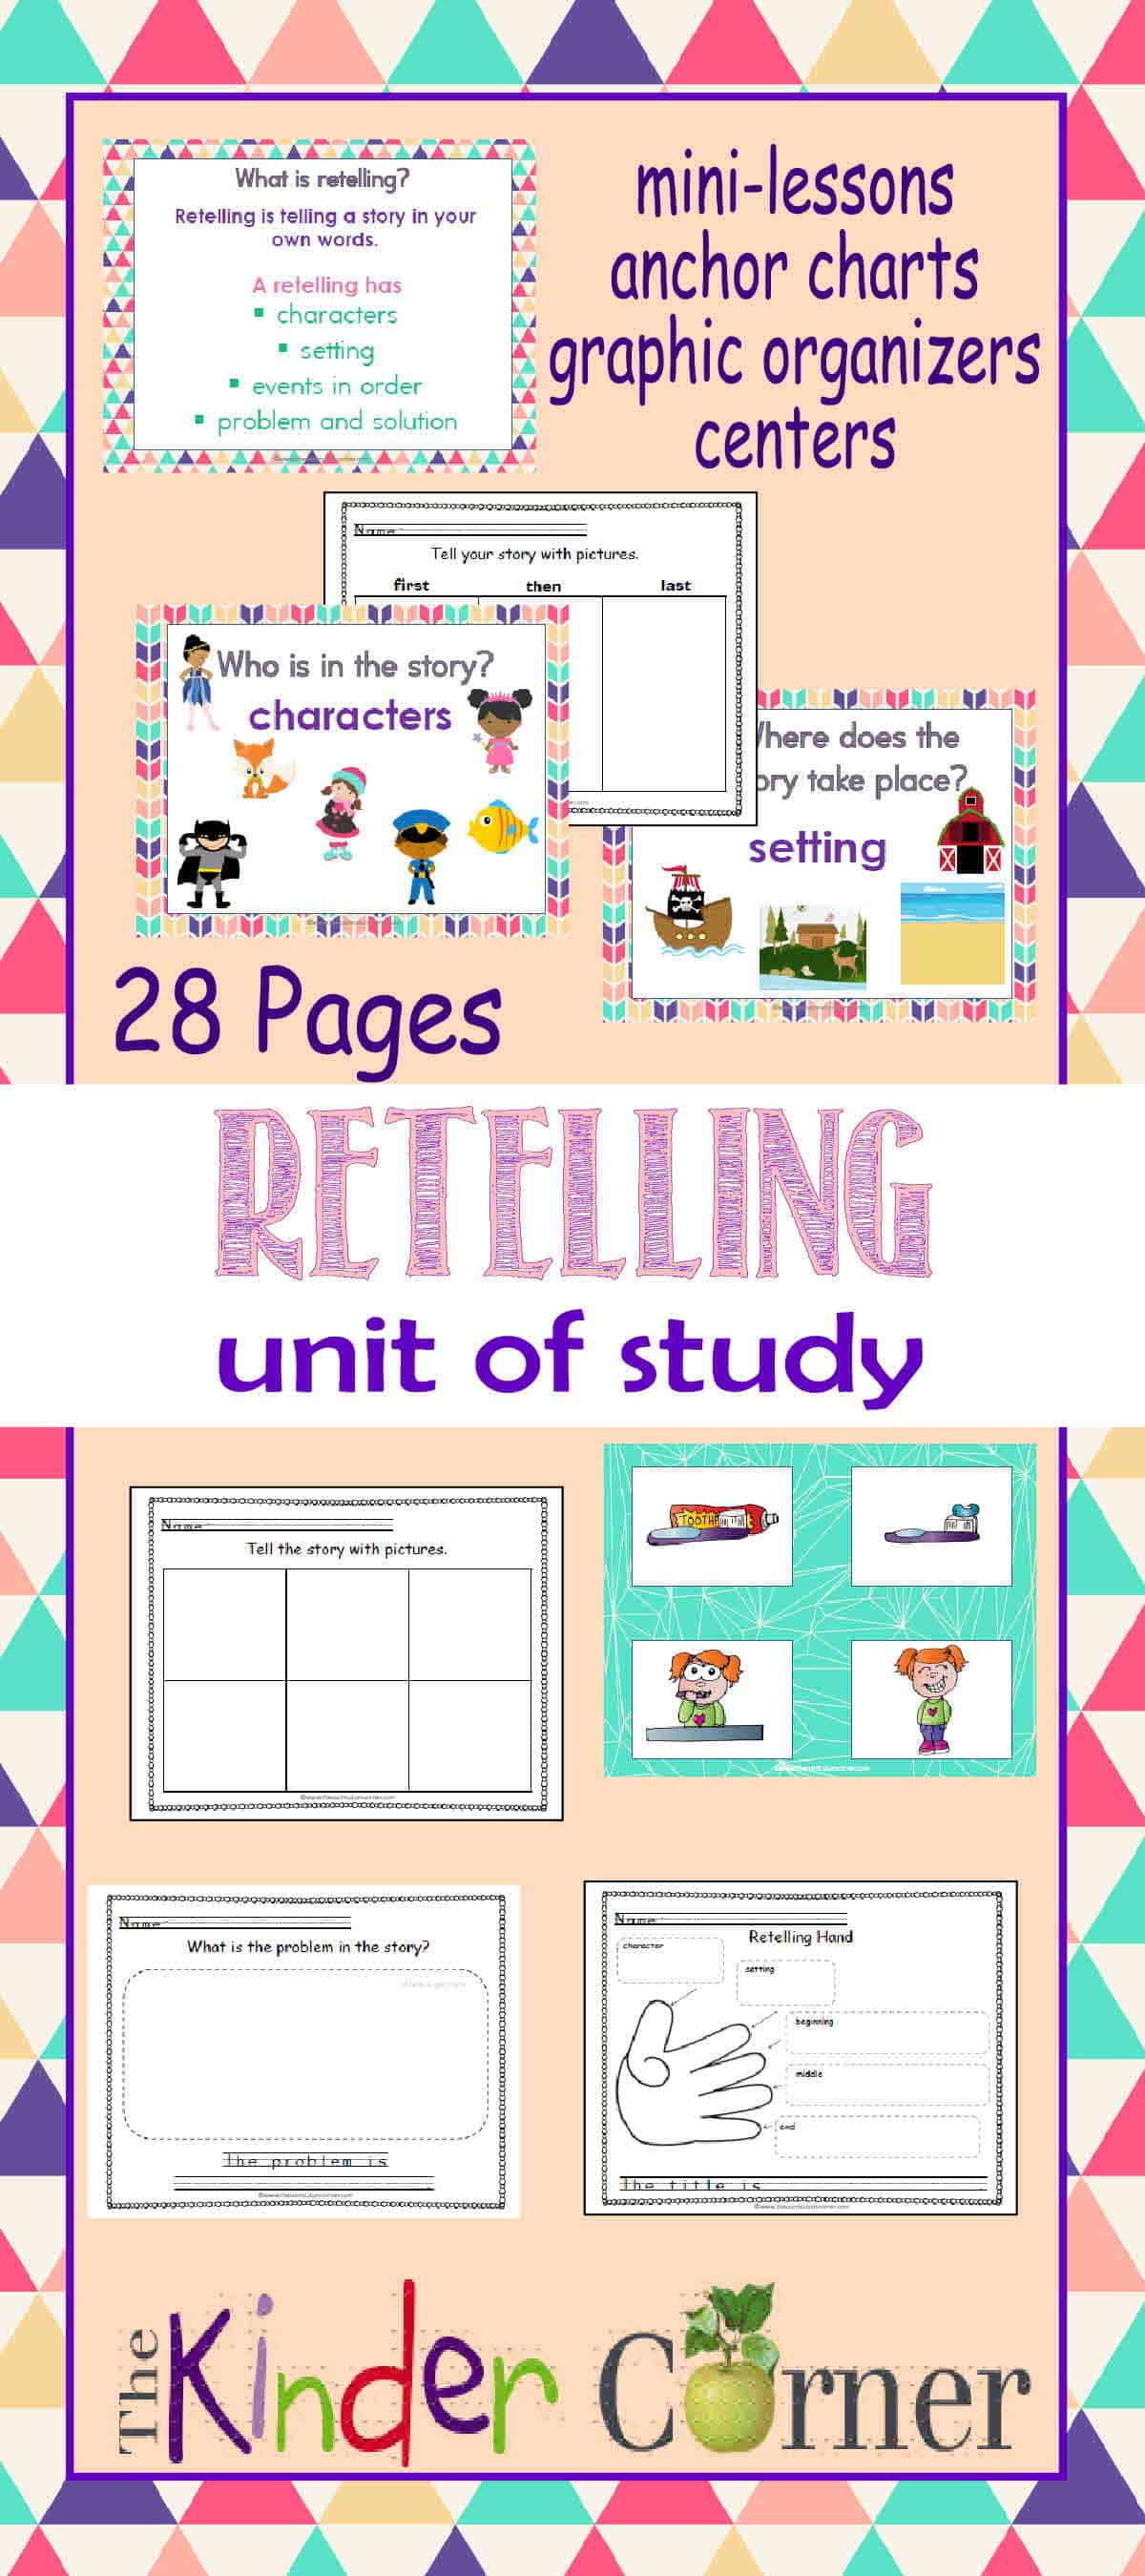 retelling unit of study the kinder corner